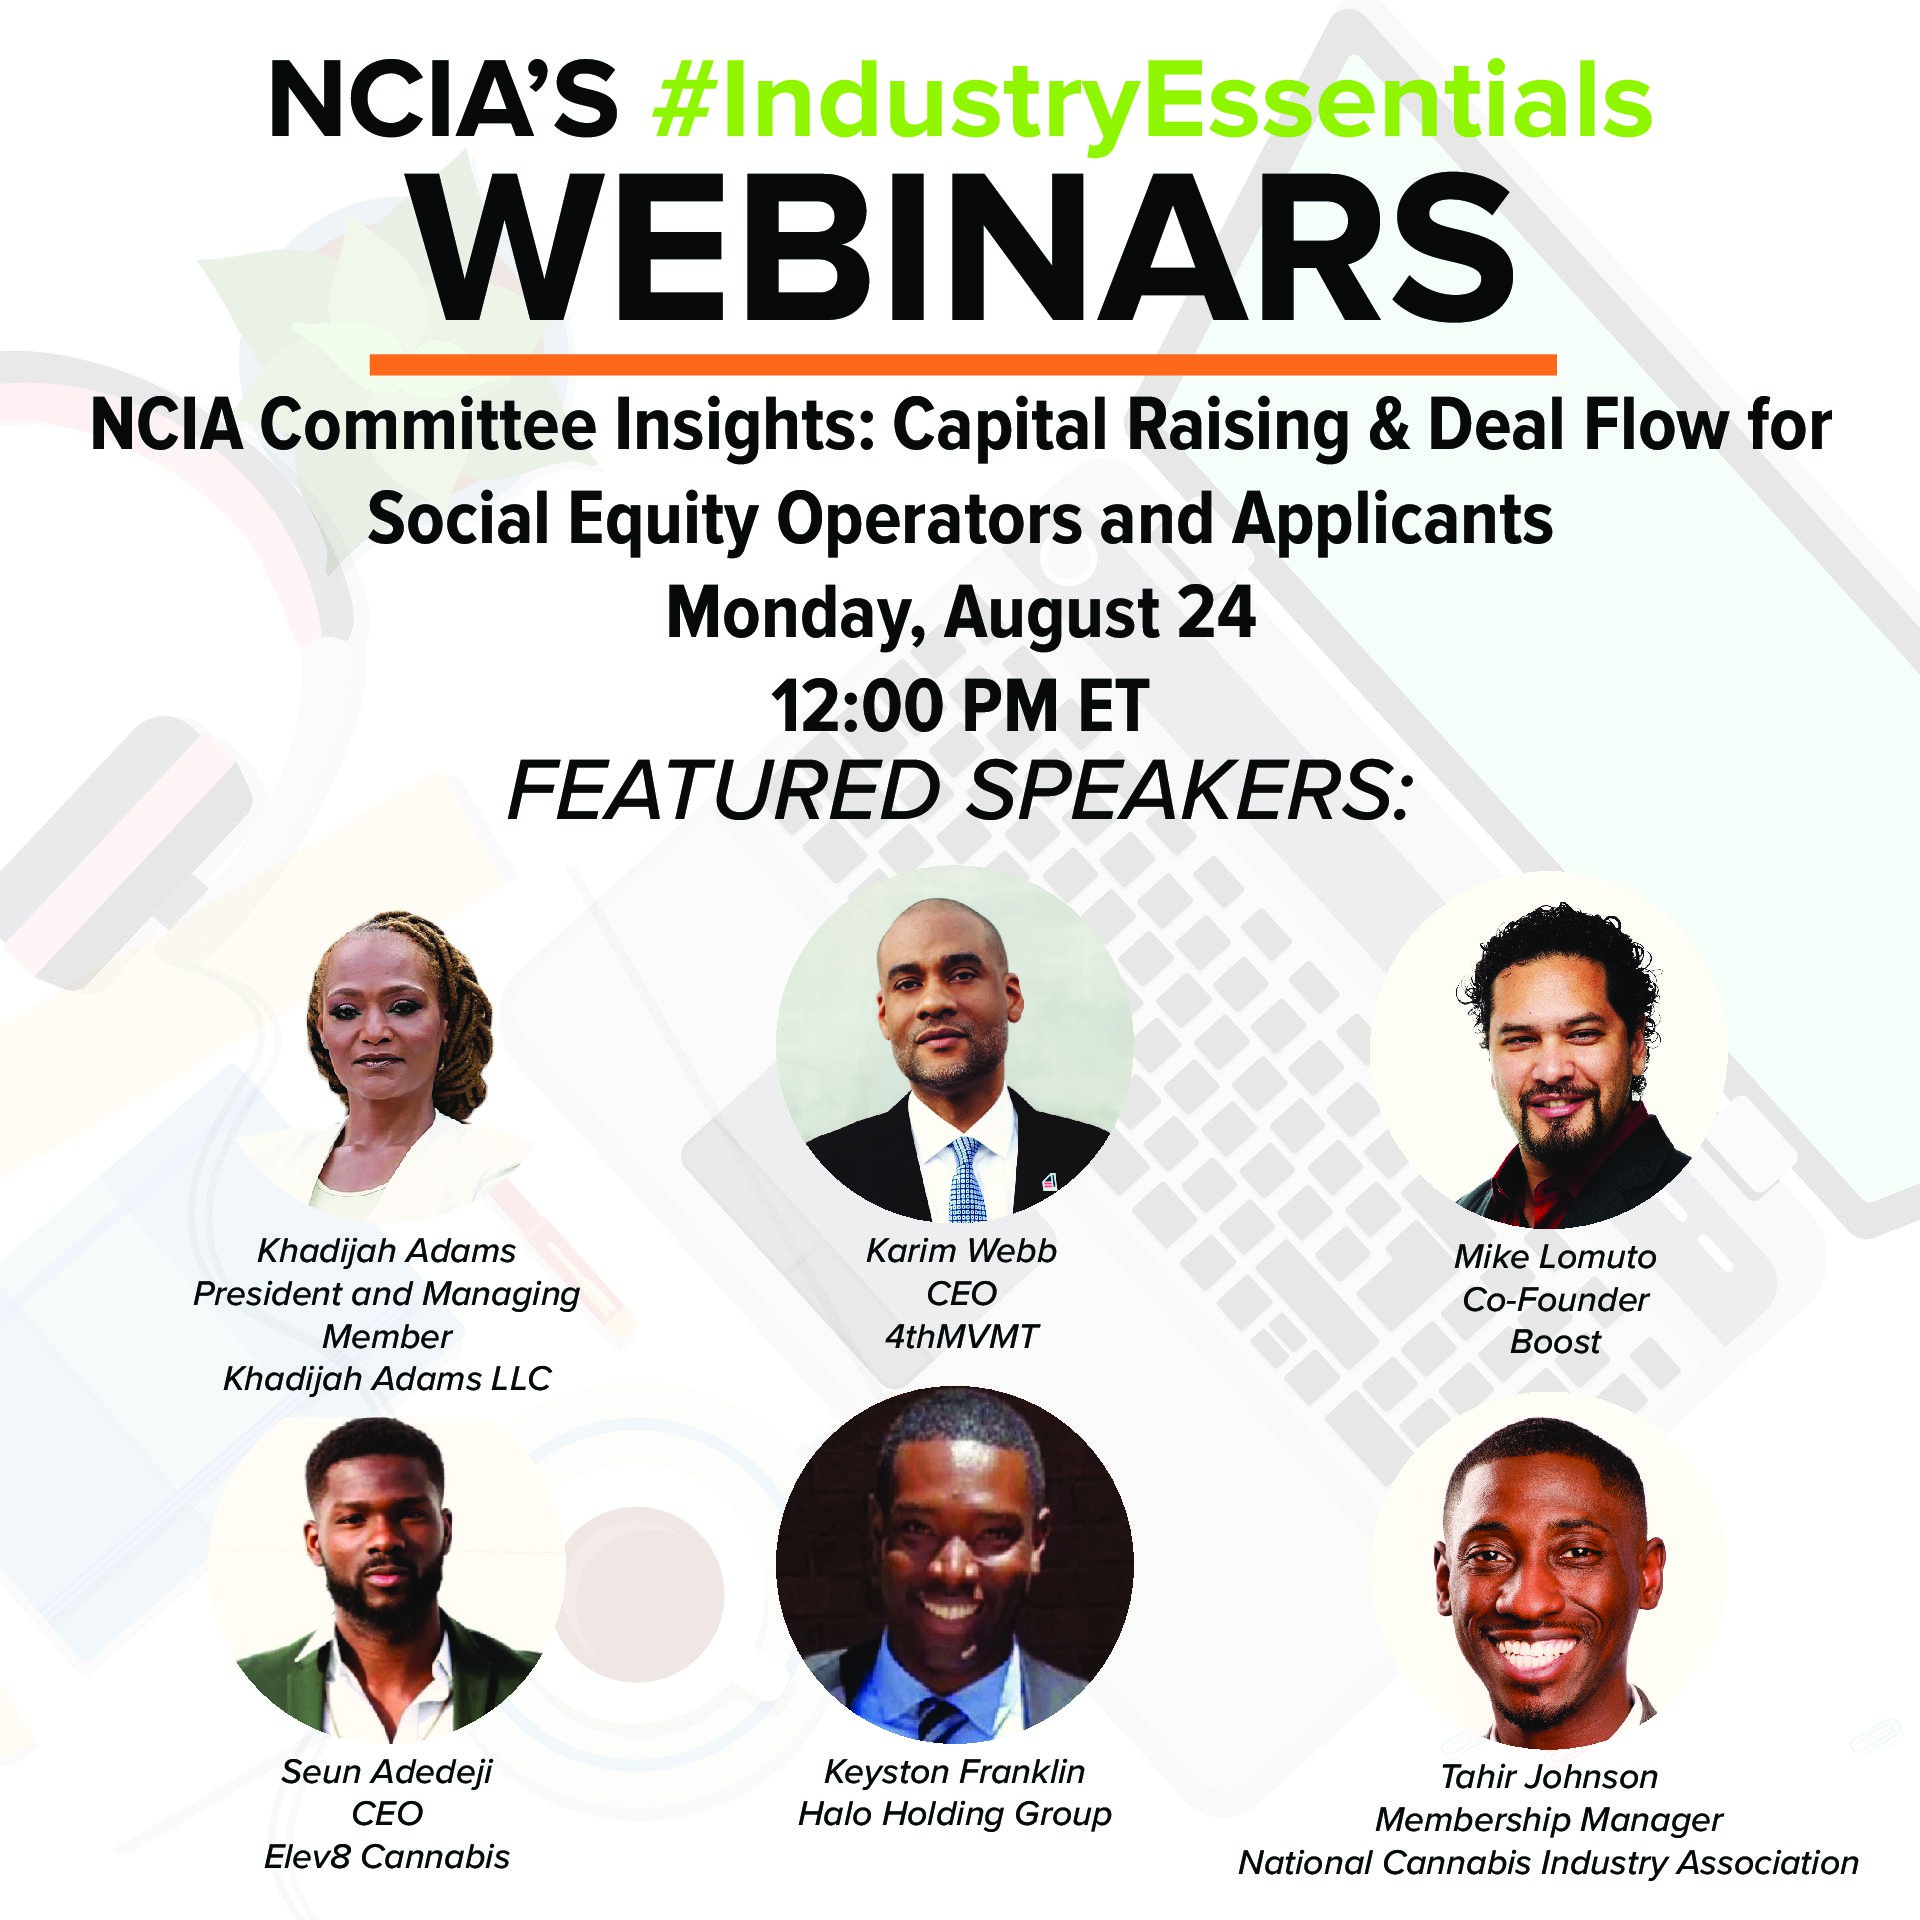 #IndustryEssentials Webinar Recording – NCIA Committee Insights: Capital Raising & Deal Flow for Social Equity Operators and Applicants